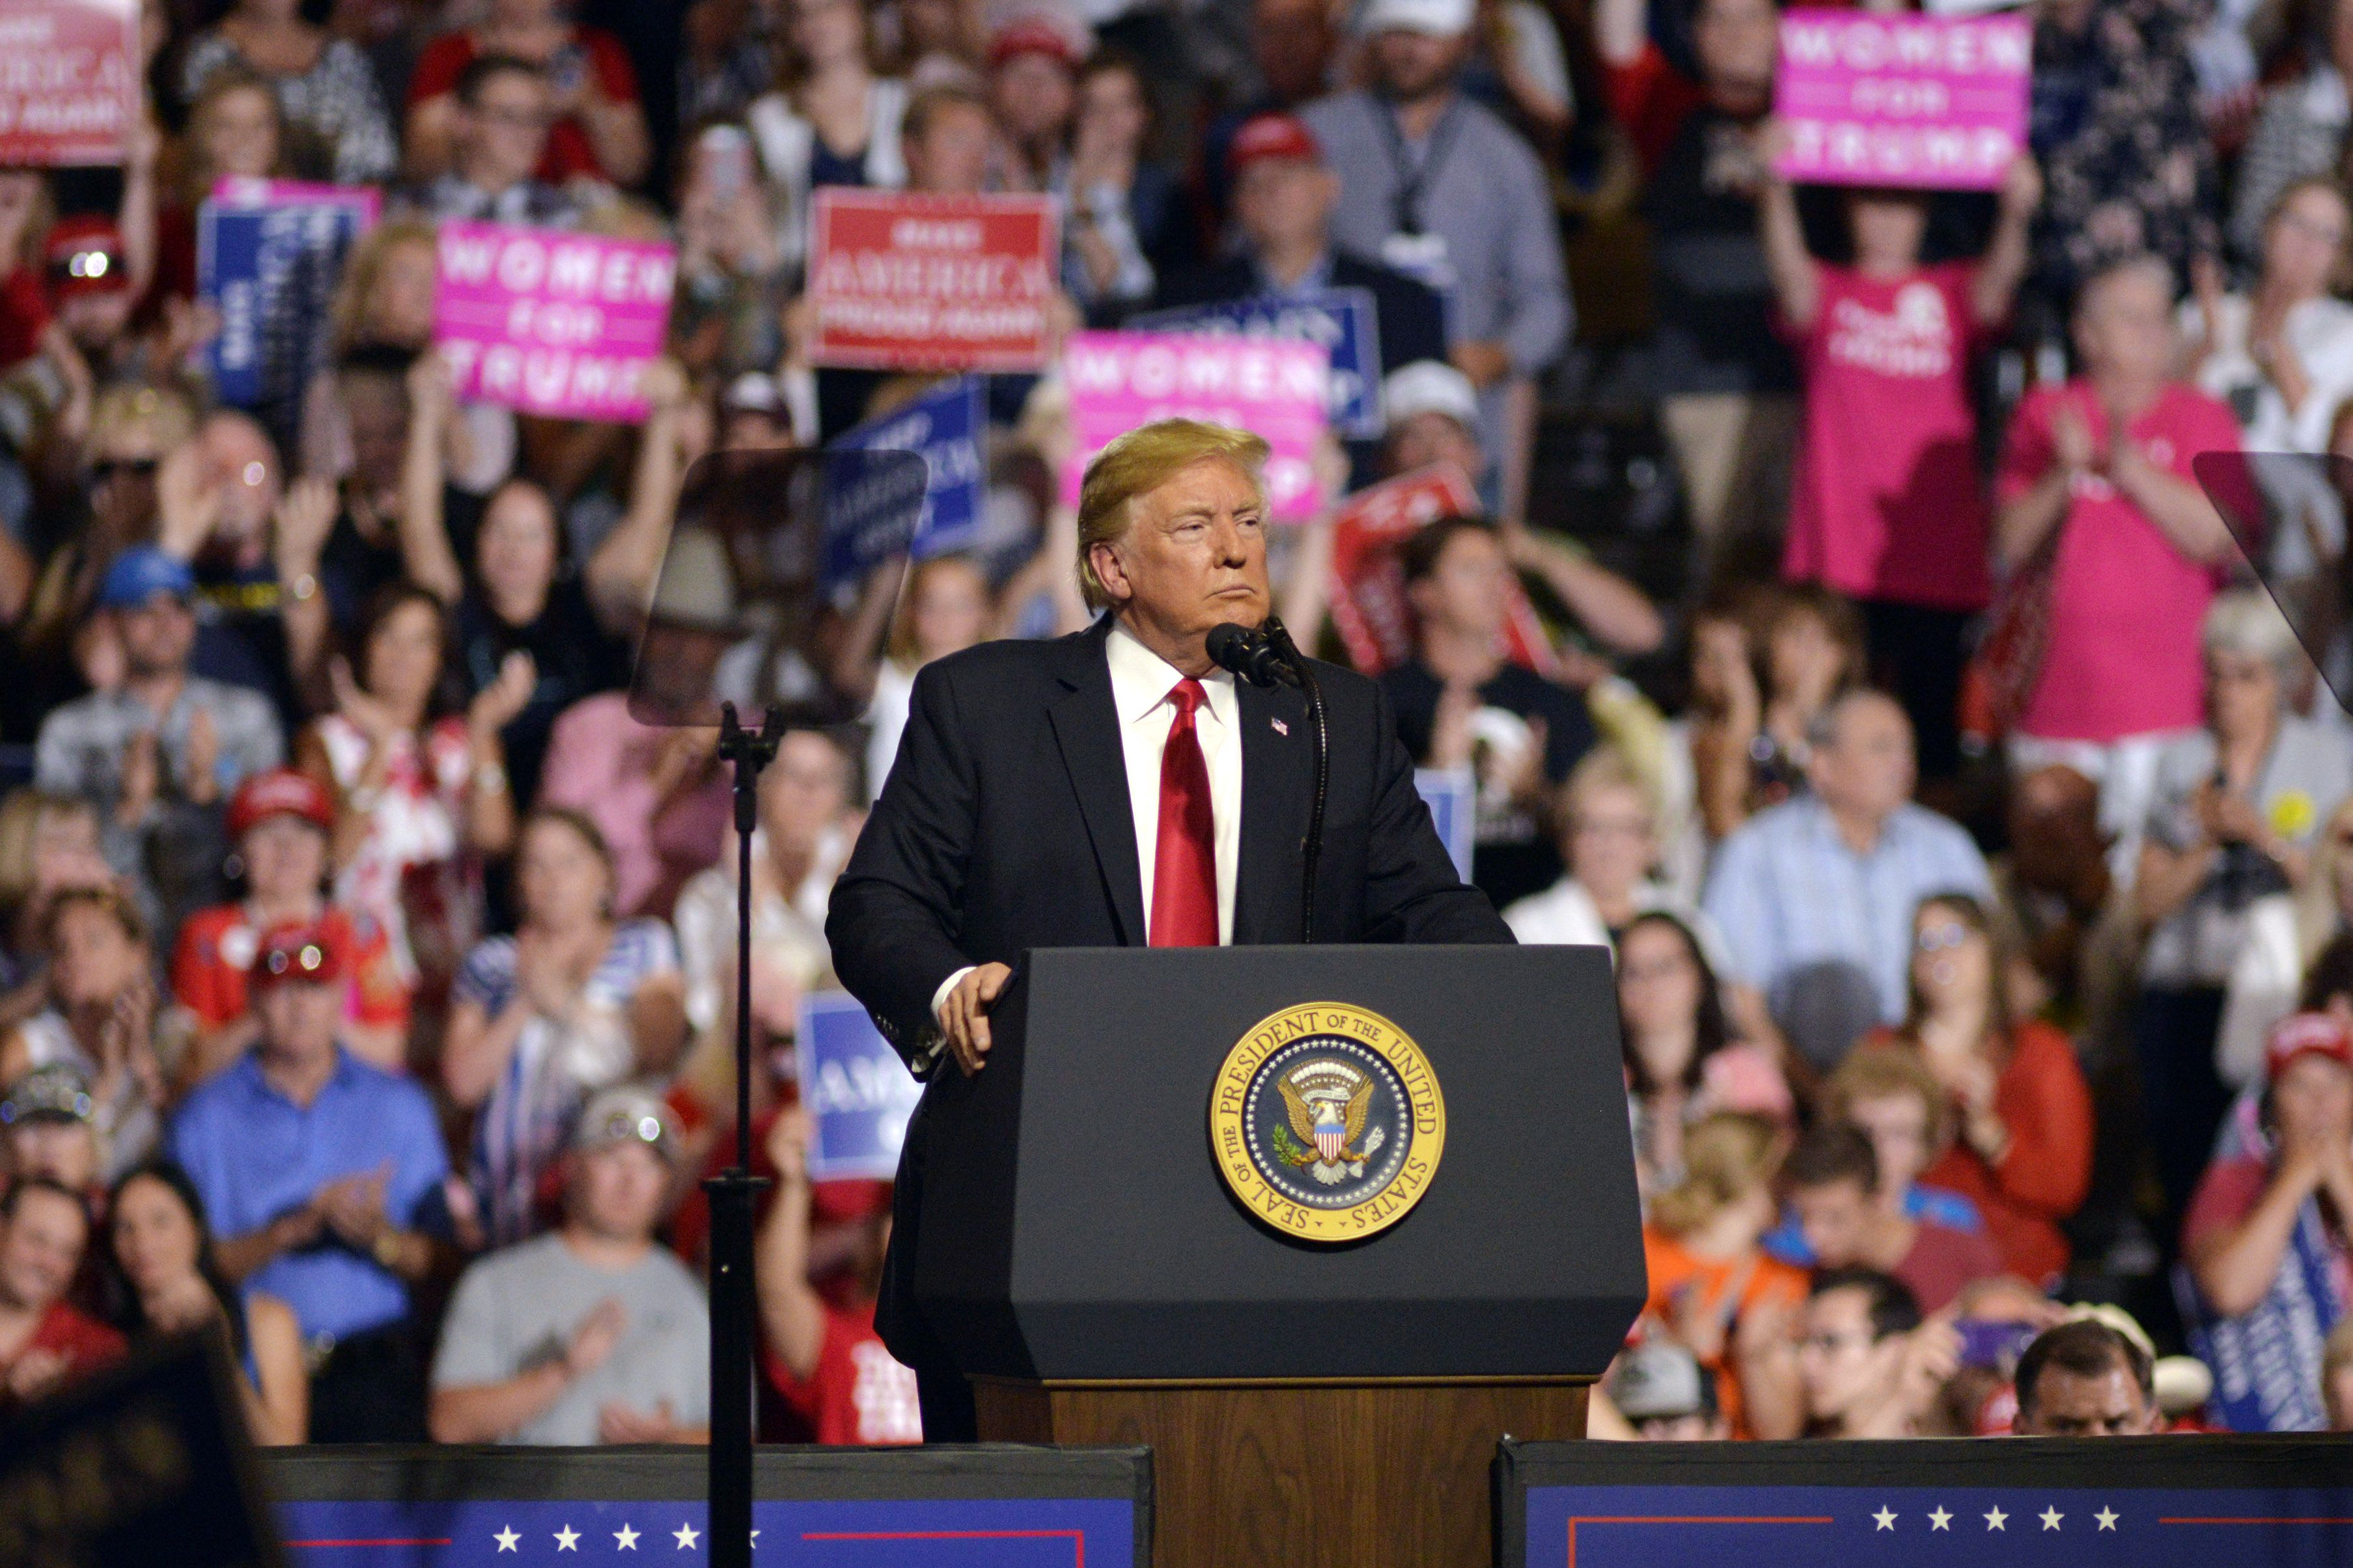 U.S. President Donald Trump pauses as he speaks onstage during a rally in Great Falls, Montana, U.S., on Thursday, July 5, 2018. Trumpis firing the biggest shot yet in the global trade war by imposing tariffs on $34 billion of Chinese imports, delivering on a promise to his political supporters that risks provoking retaliation and harming the world economy. Photographer: Tim Goessman/Bloomberg via Getty Images